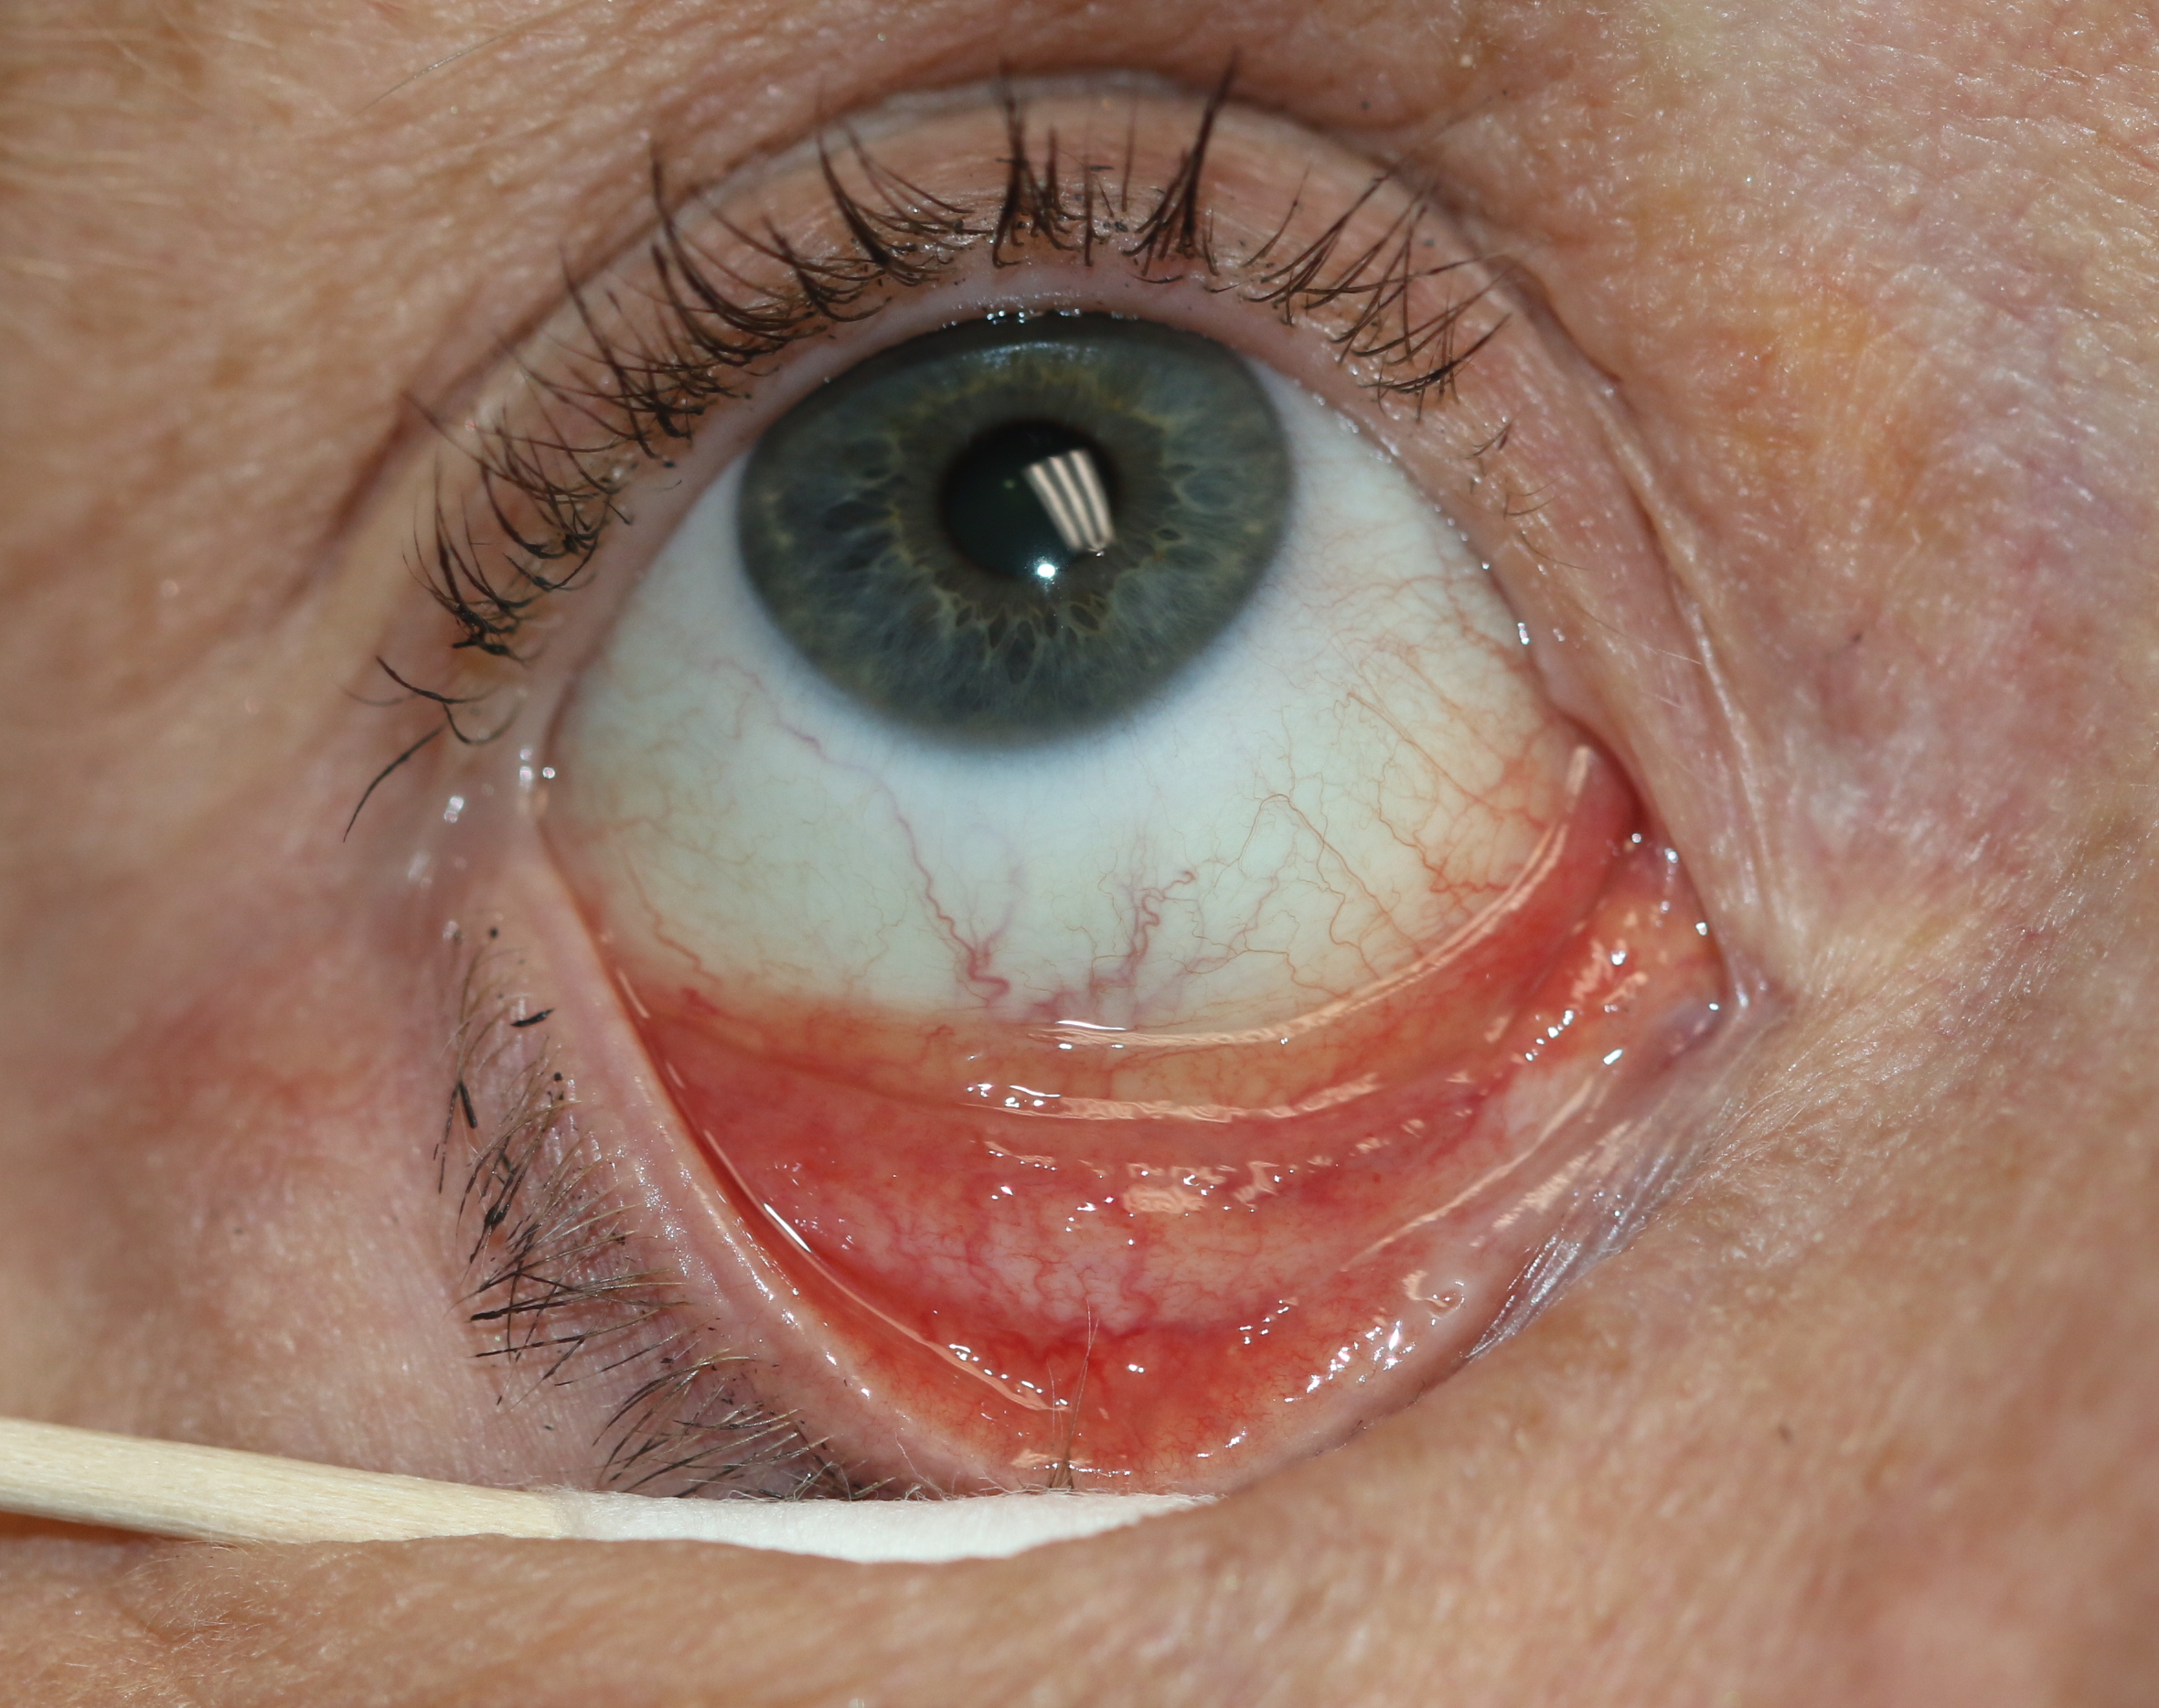 Follicular conjunctivitis may be seen with viral infections like herpes zoster, Epstein-Barr virus infection, infectious mononucleosis), chlamydial infections, and in reaction of topical medications and molluscum contagiosum. Follicular conjunctivitis has been described in patients with the Clovid-19 infection (coronavirus infection). The inferior and superior tarsal conjunctiva and the fornices show gray-white elevated swellings which are about 105 - 1 mm in diameter and have a velvety appearance